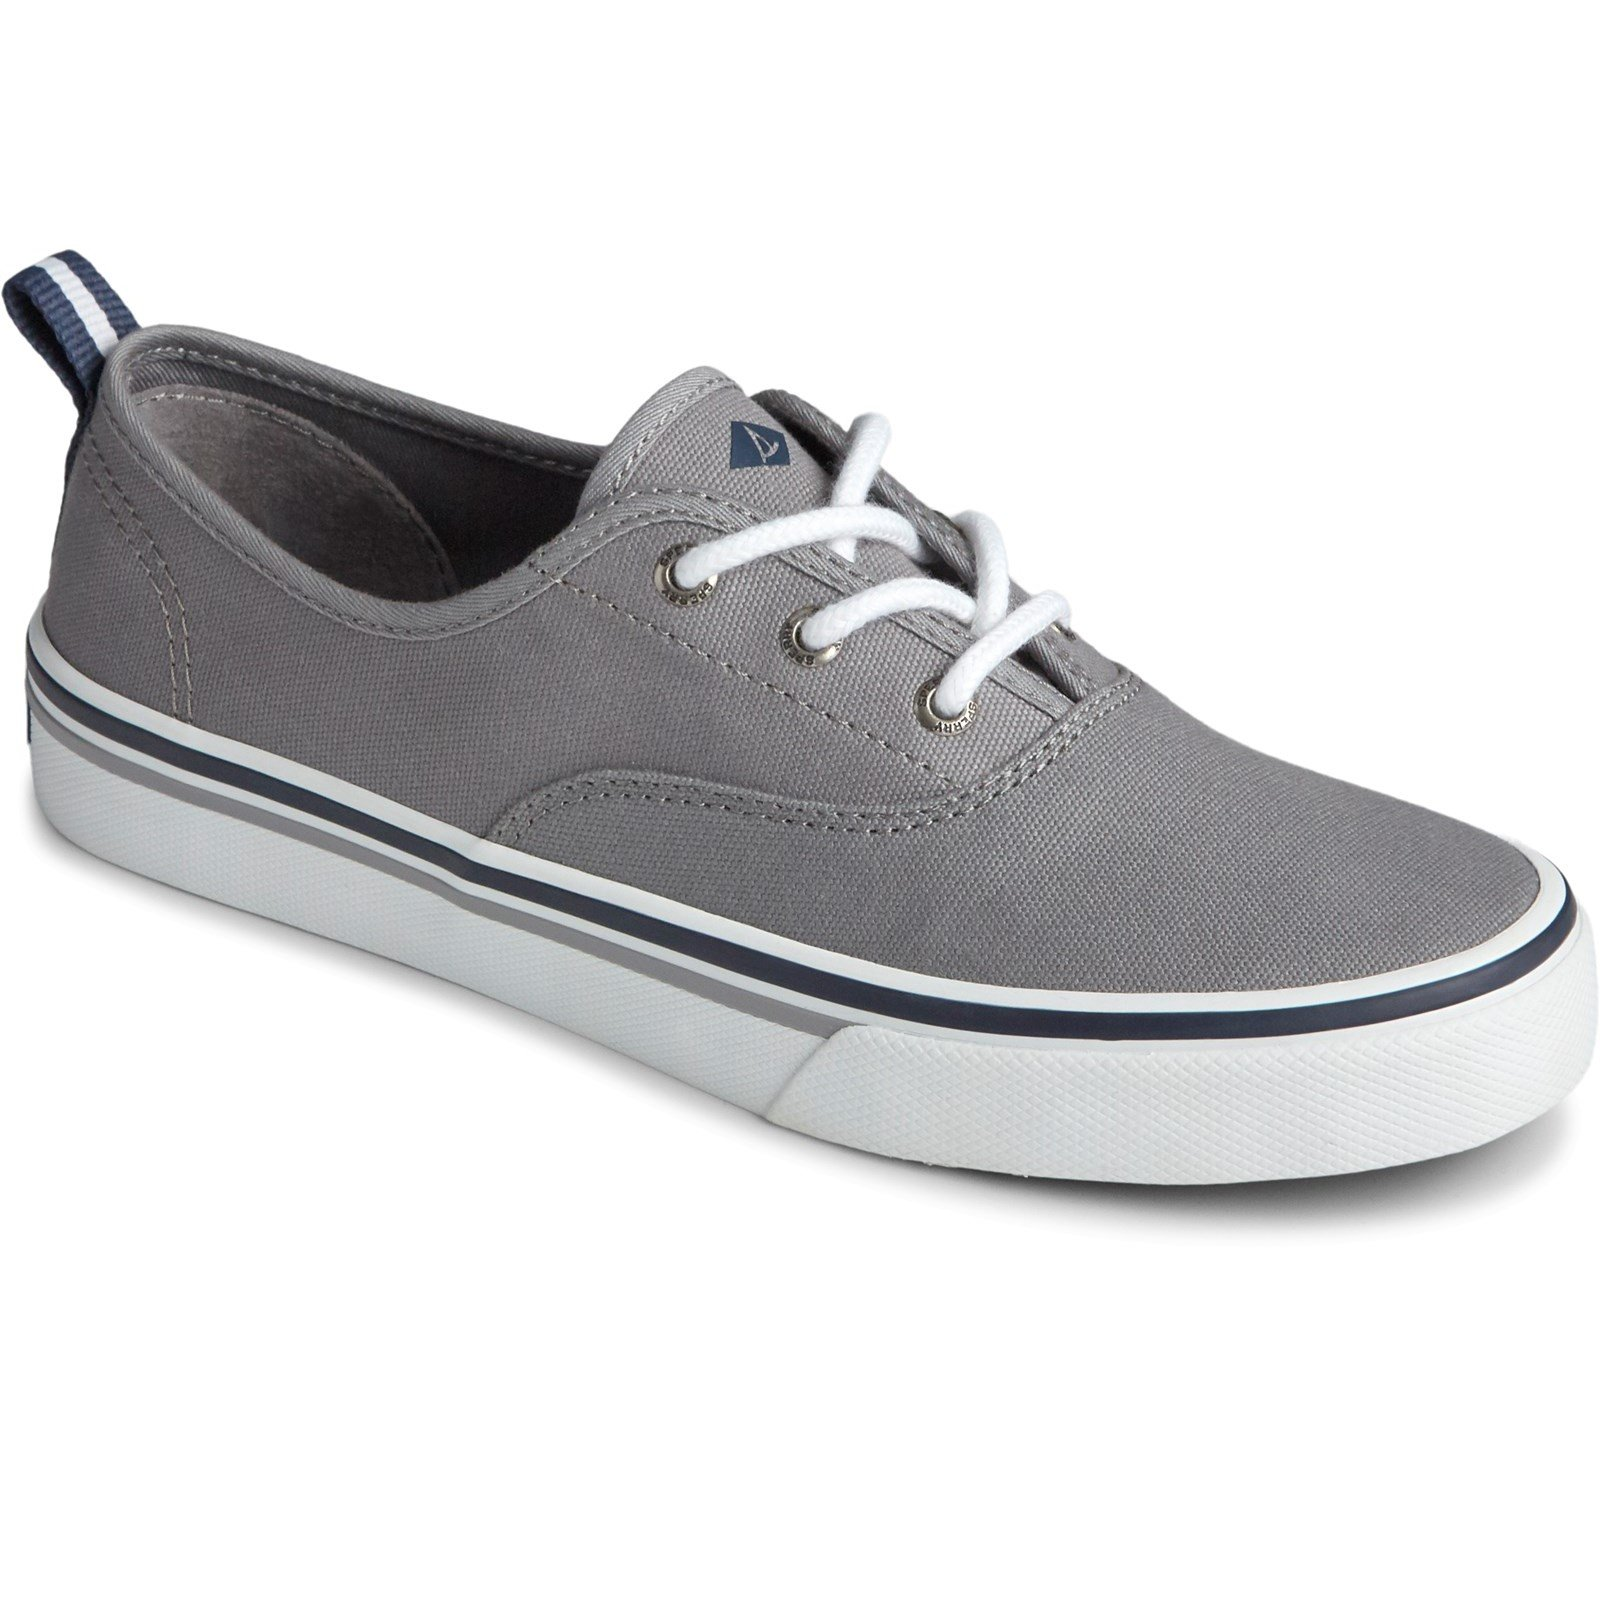 Sperry Women's Crest CVO Trainers Various Colours 32936 - Grey 3